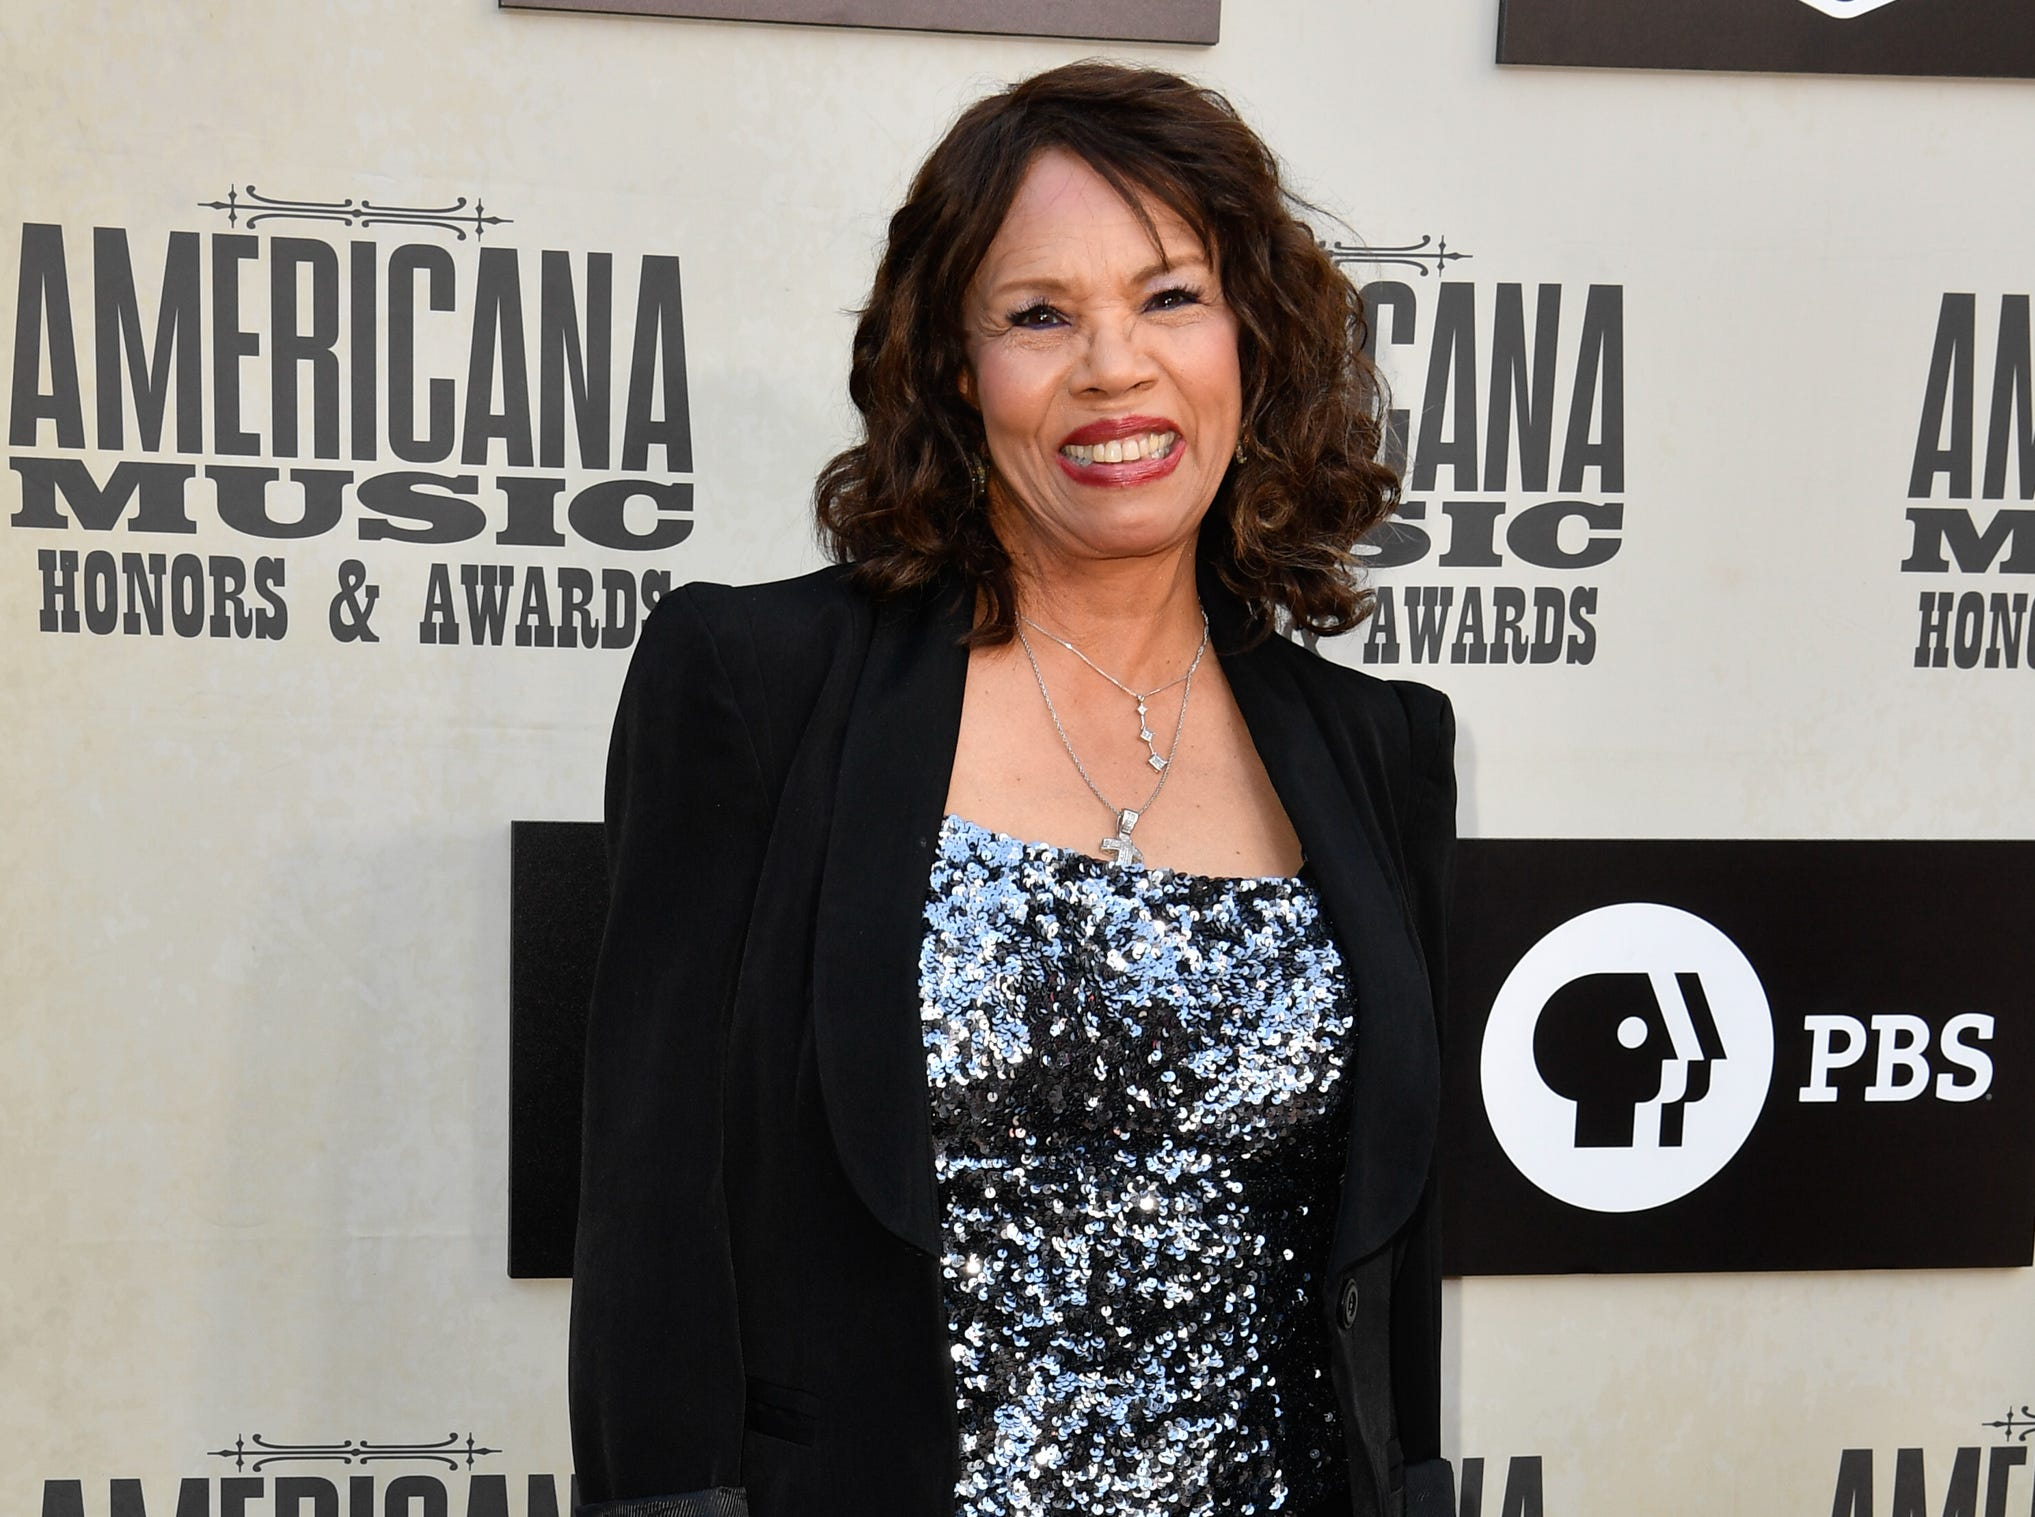 Candi Staton poses on the red carpet before the 2018 Americana Honors and Awards show at the Ryman Auditorium in Nashville, Tenn., Wednesday, Sept. 12, 2018.